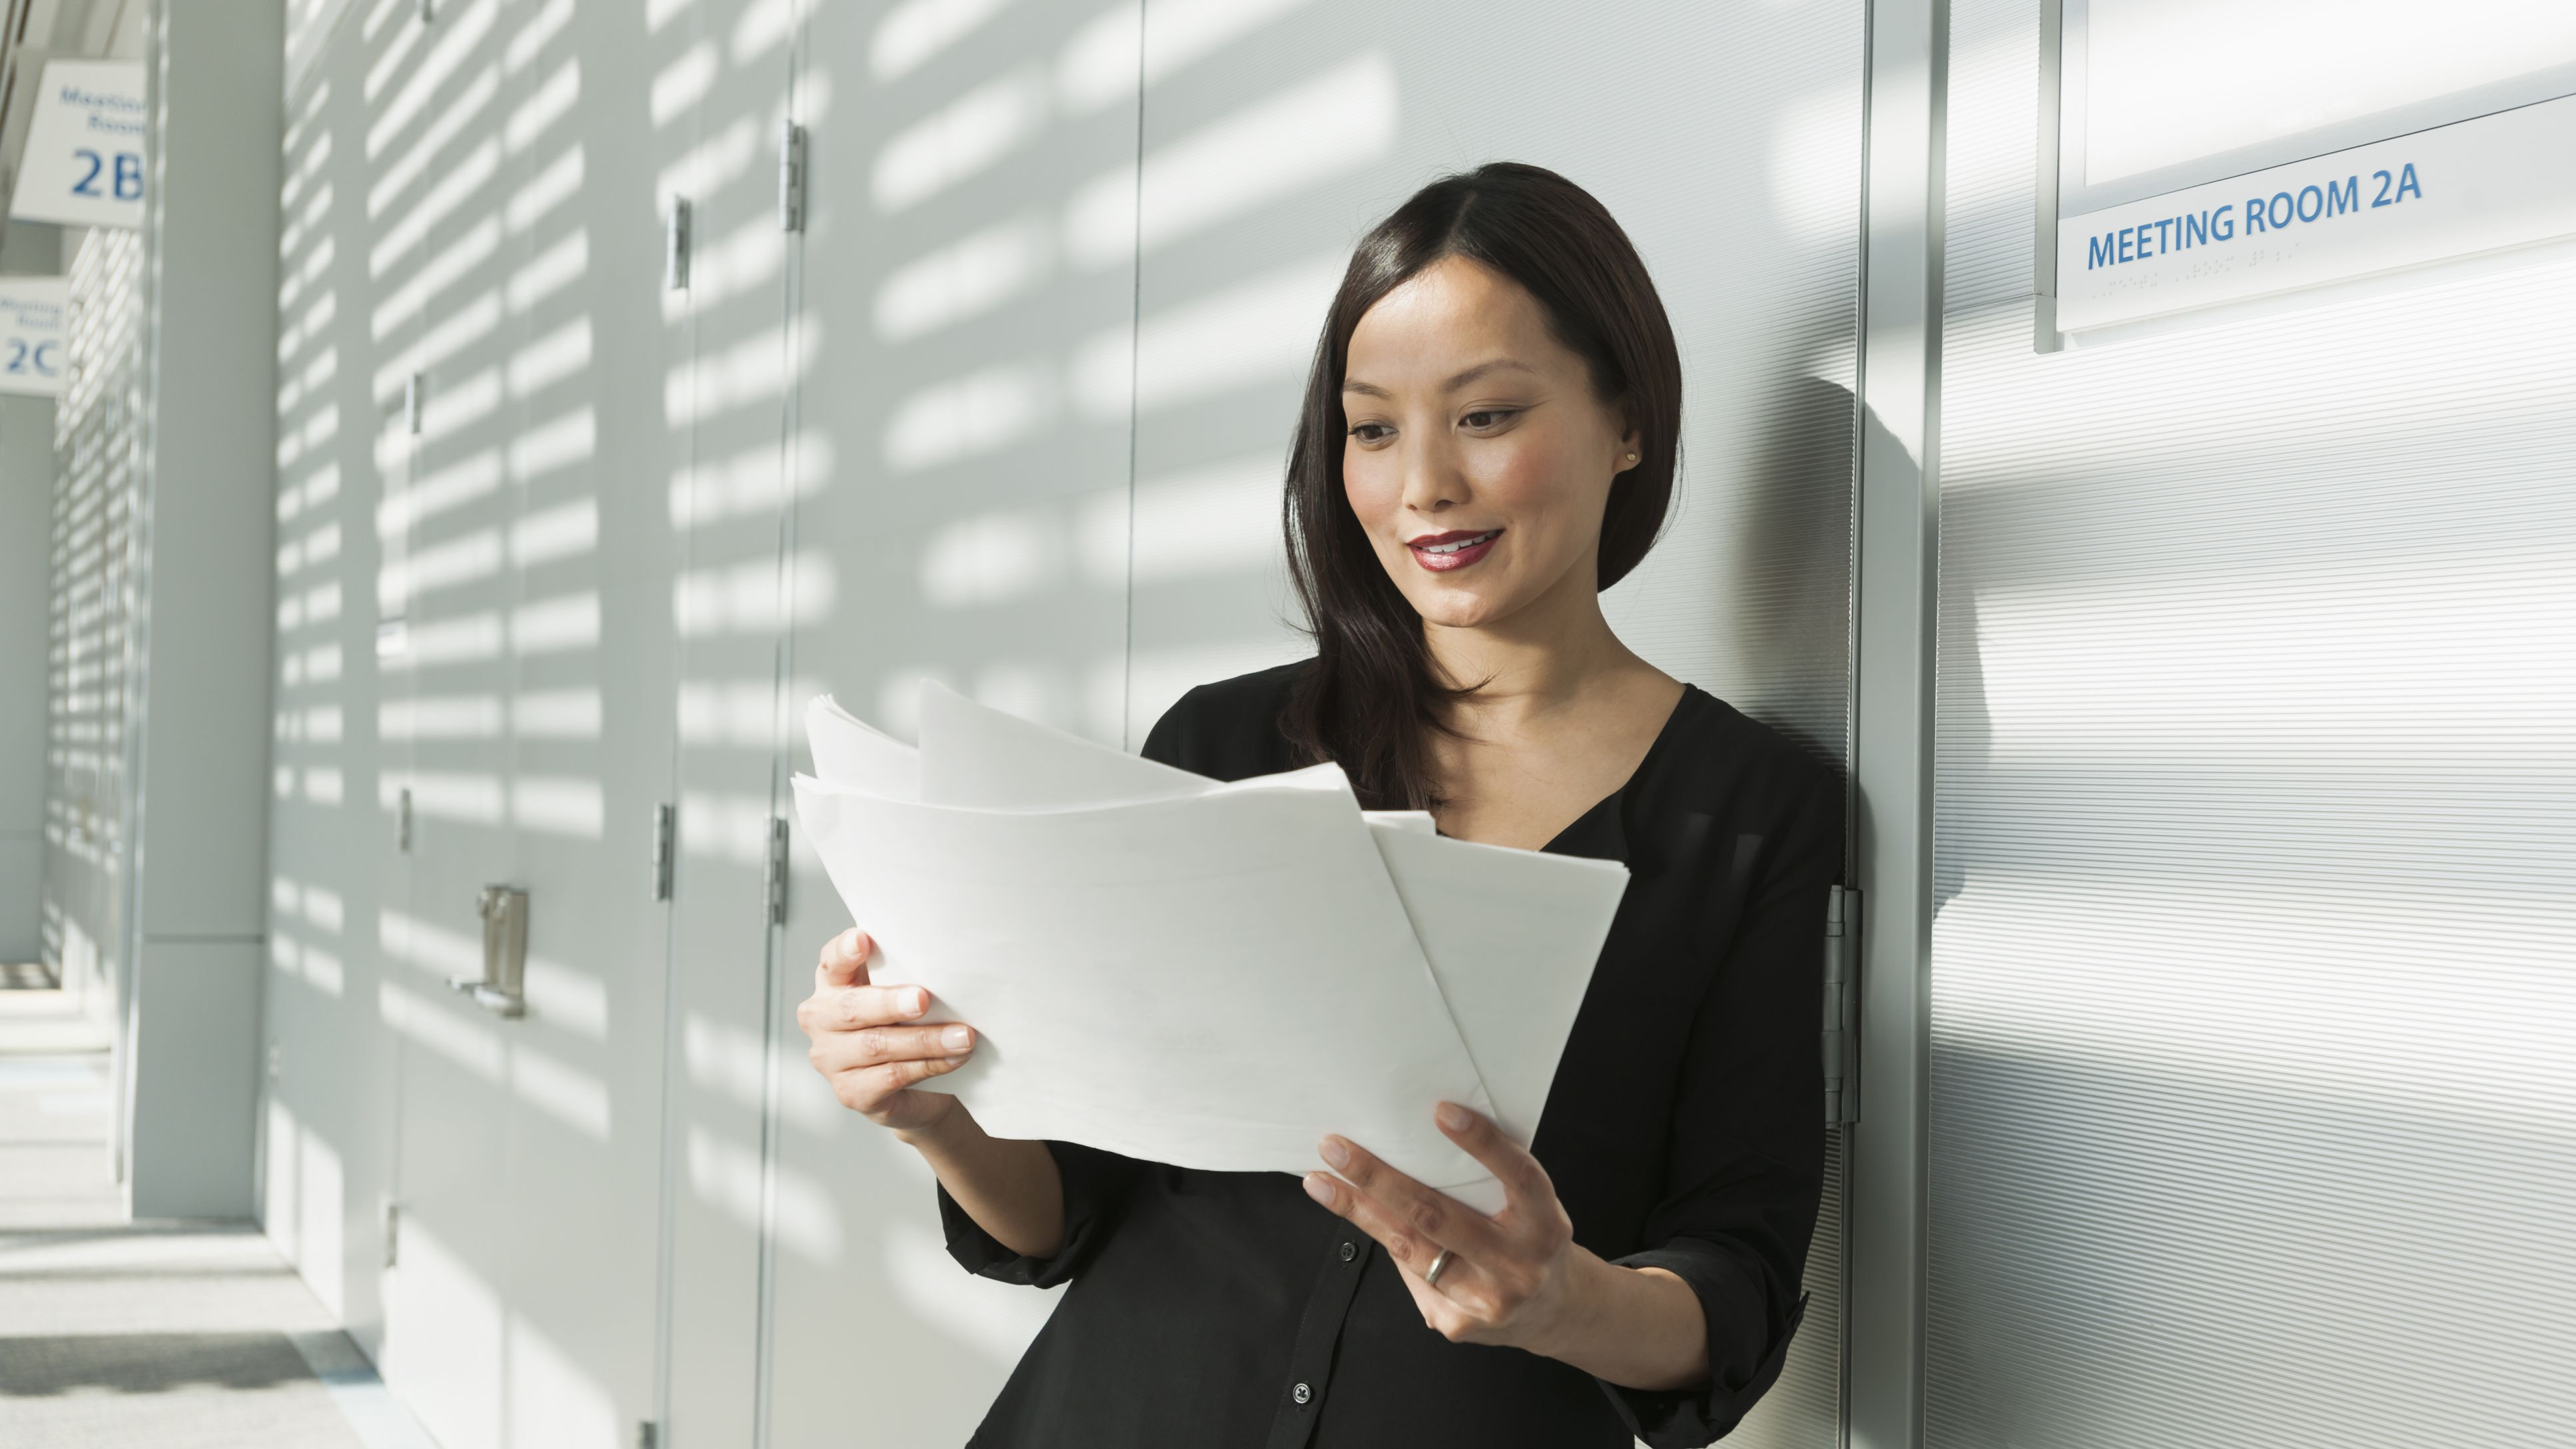 Meeting Mba Work Experience Requirements